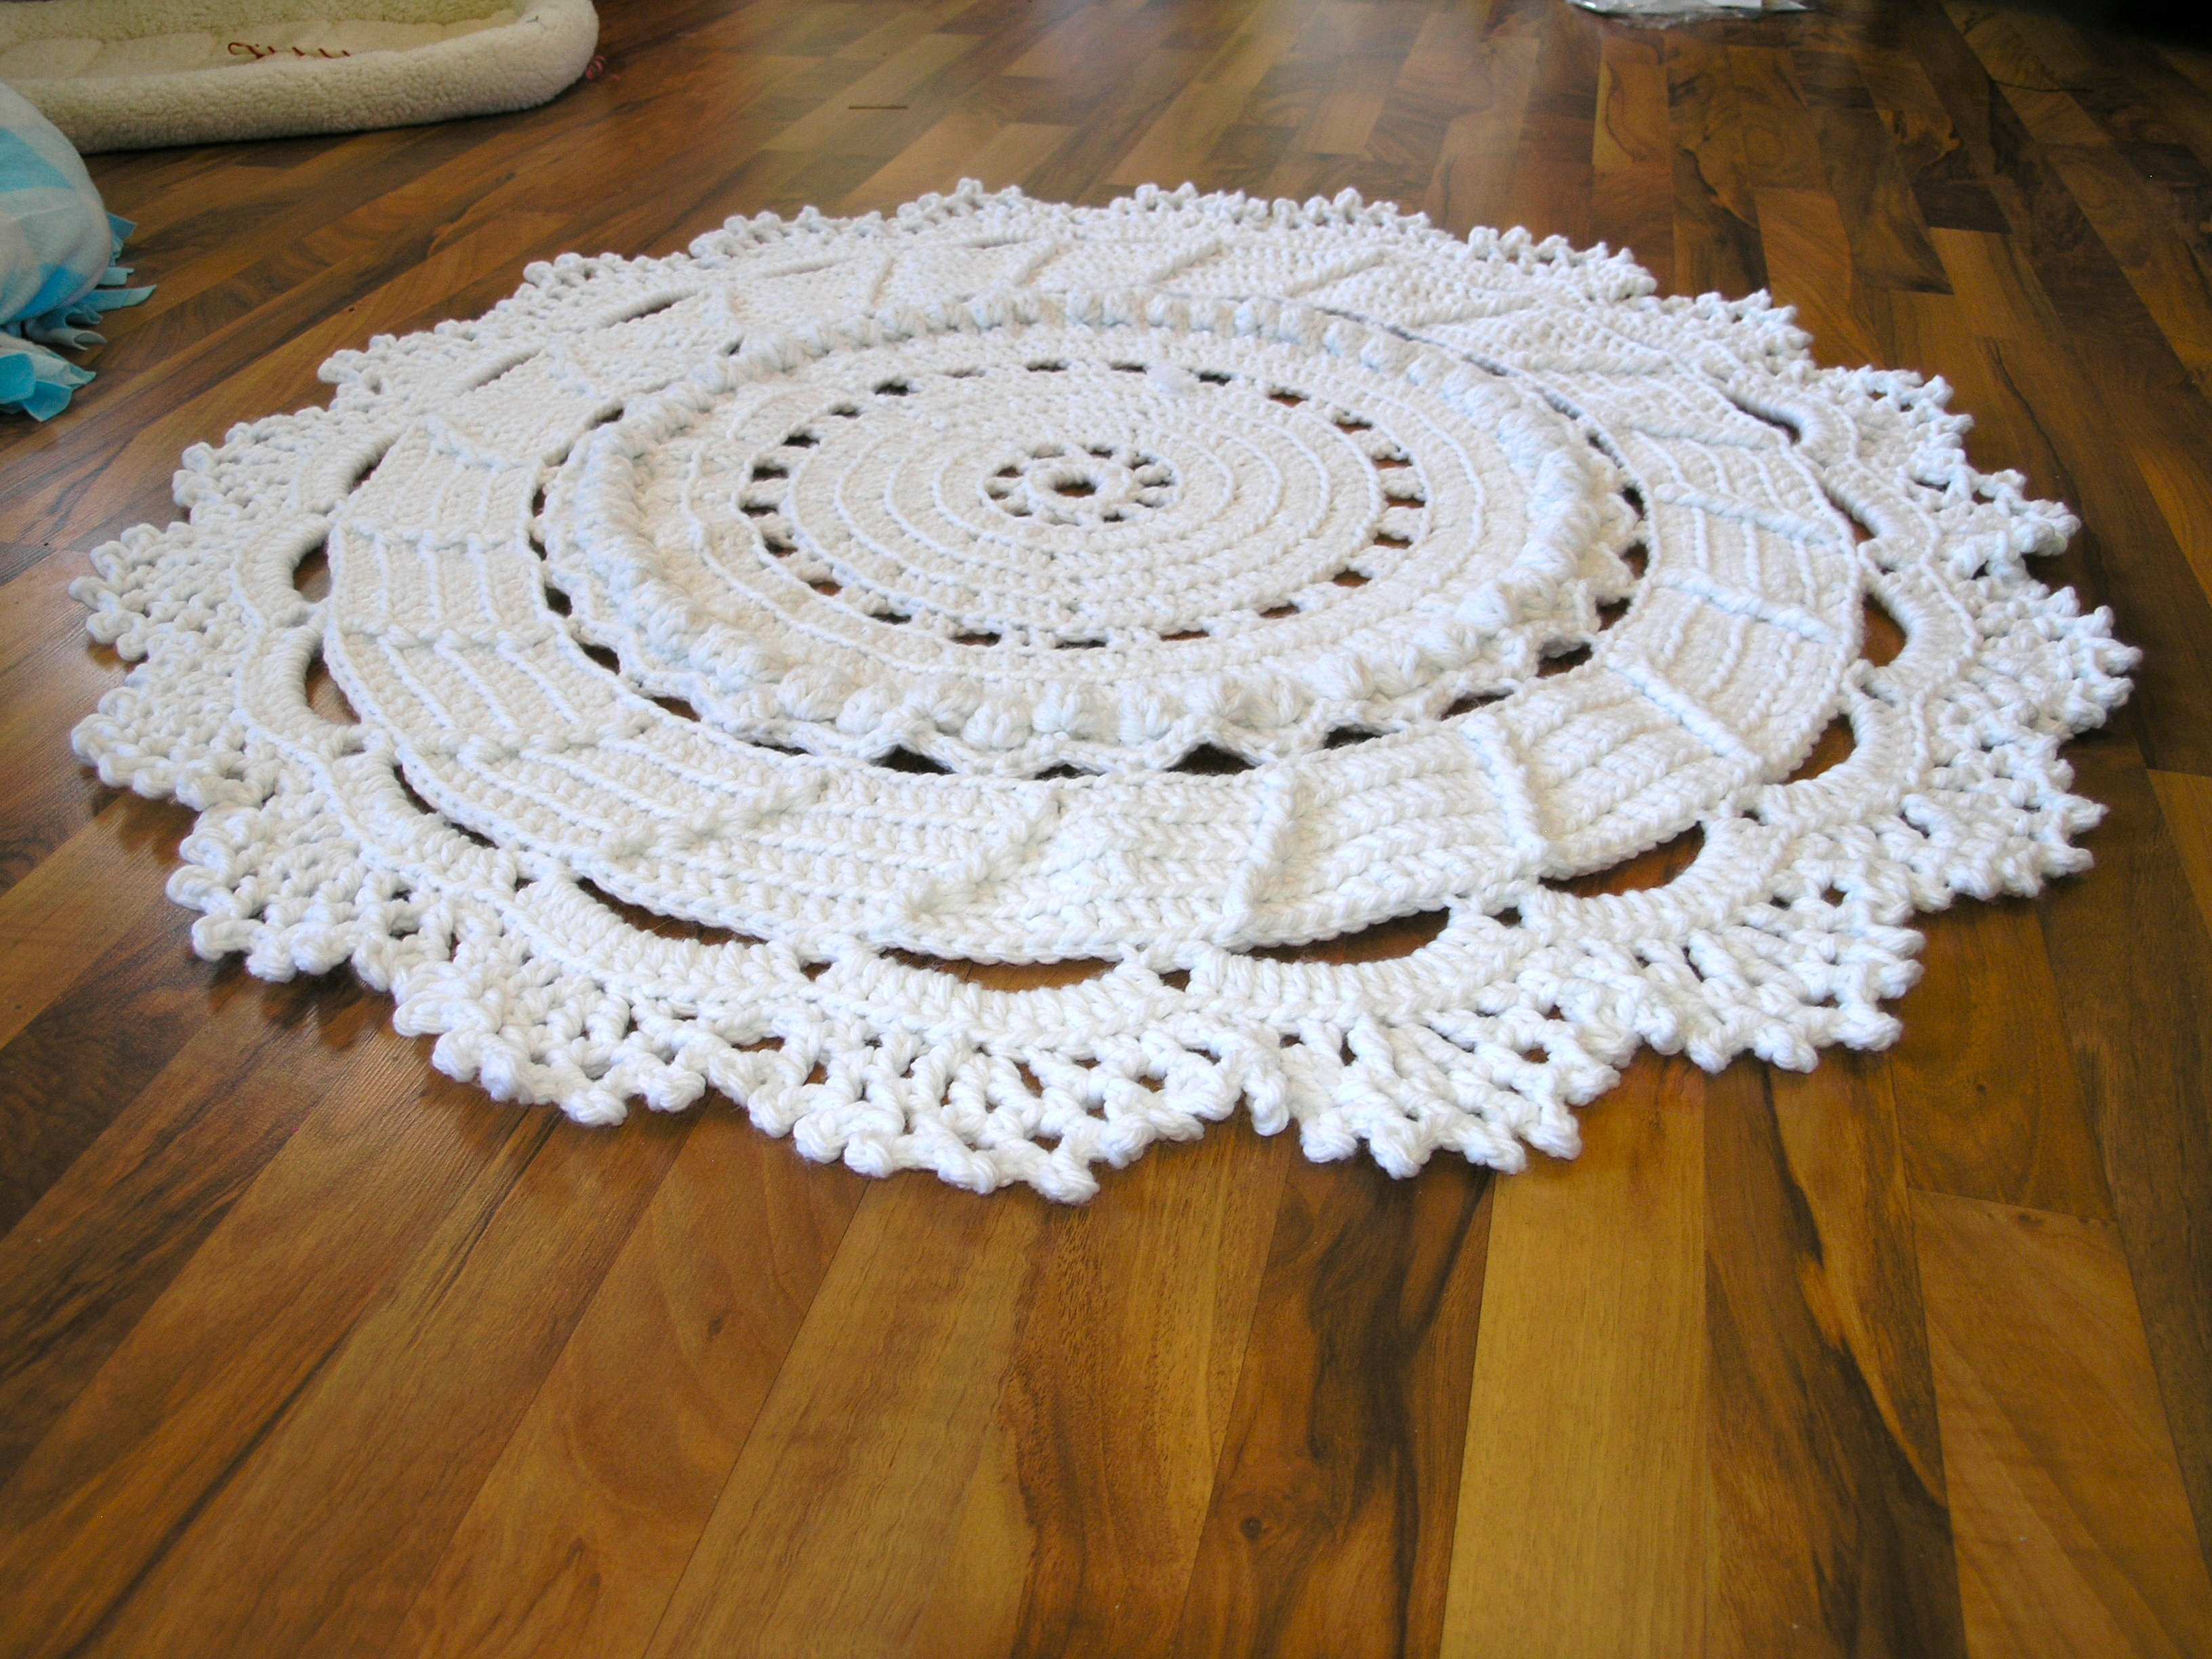 ... Wools » Blog Archive » A Giant Crochet Doily Rug for Our Living Room